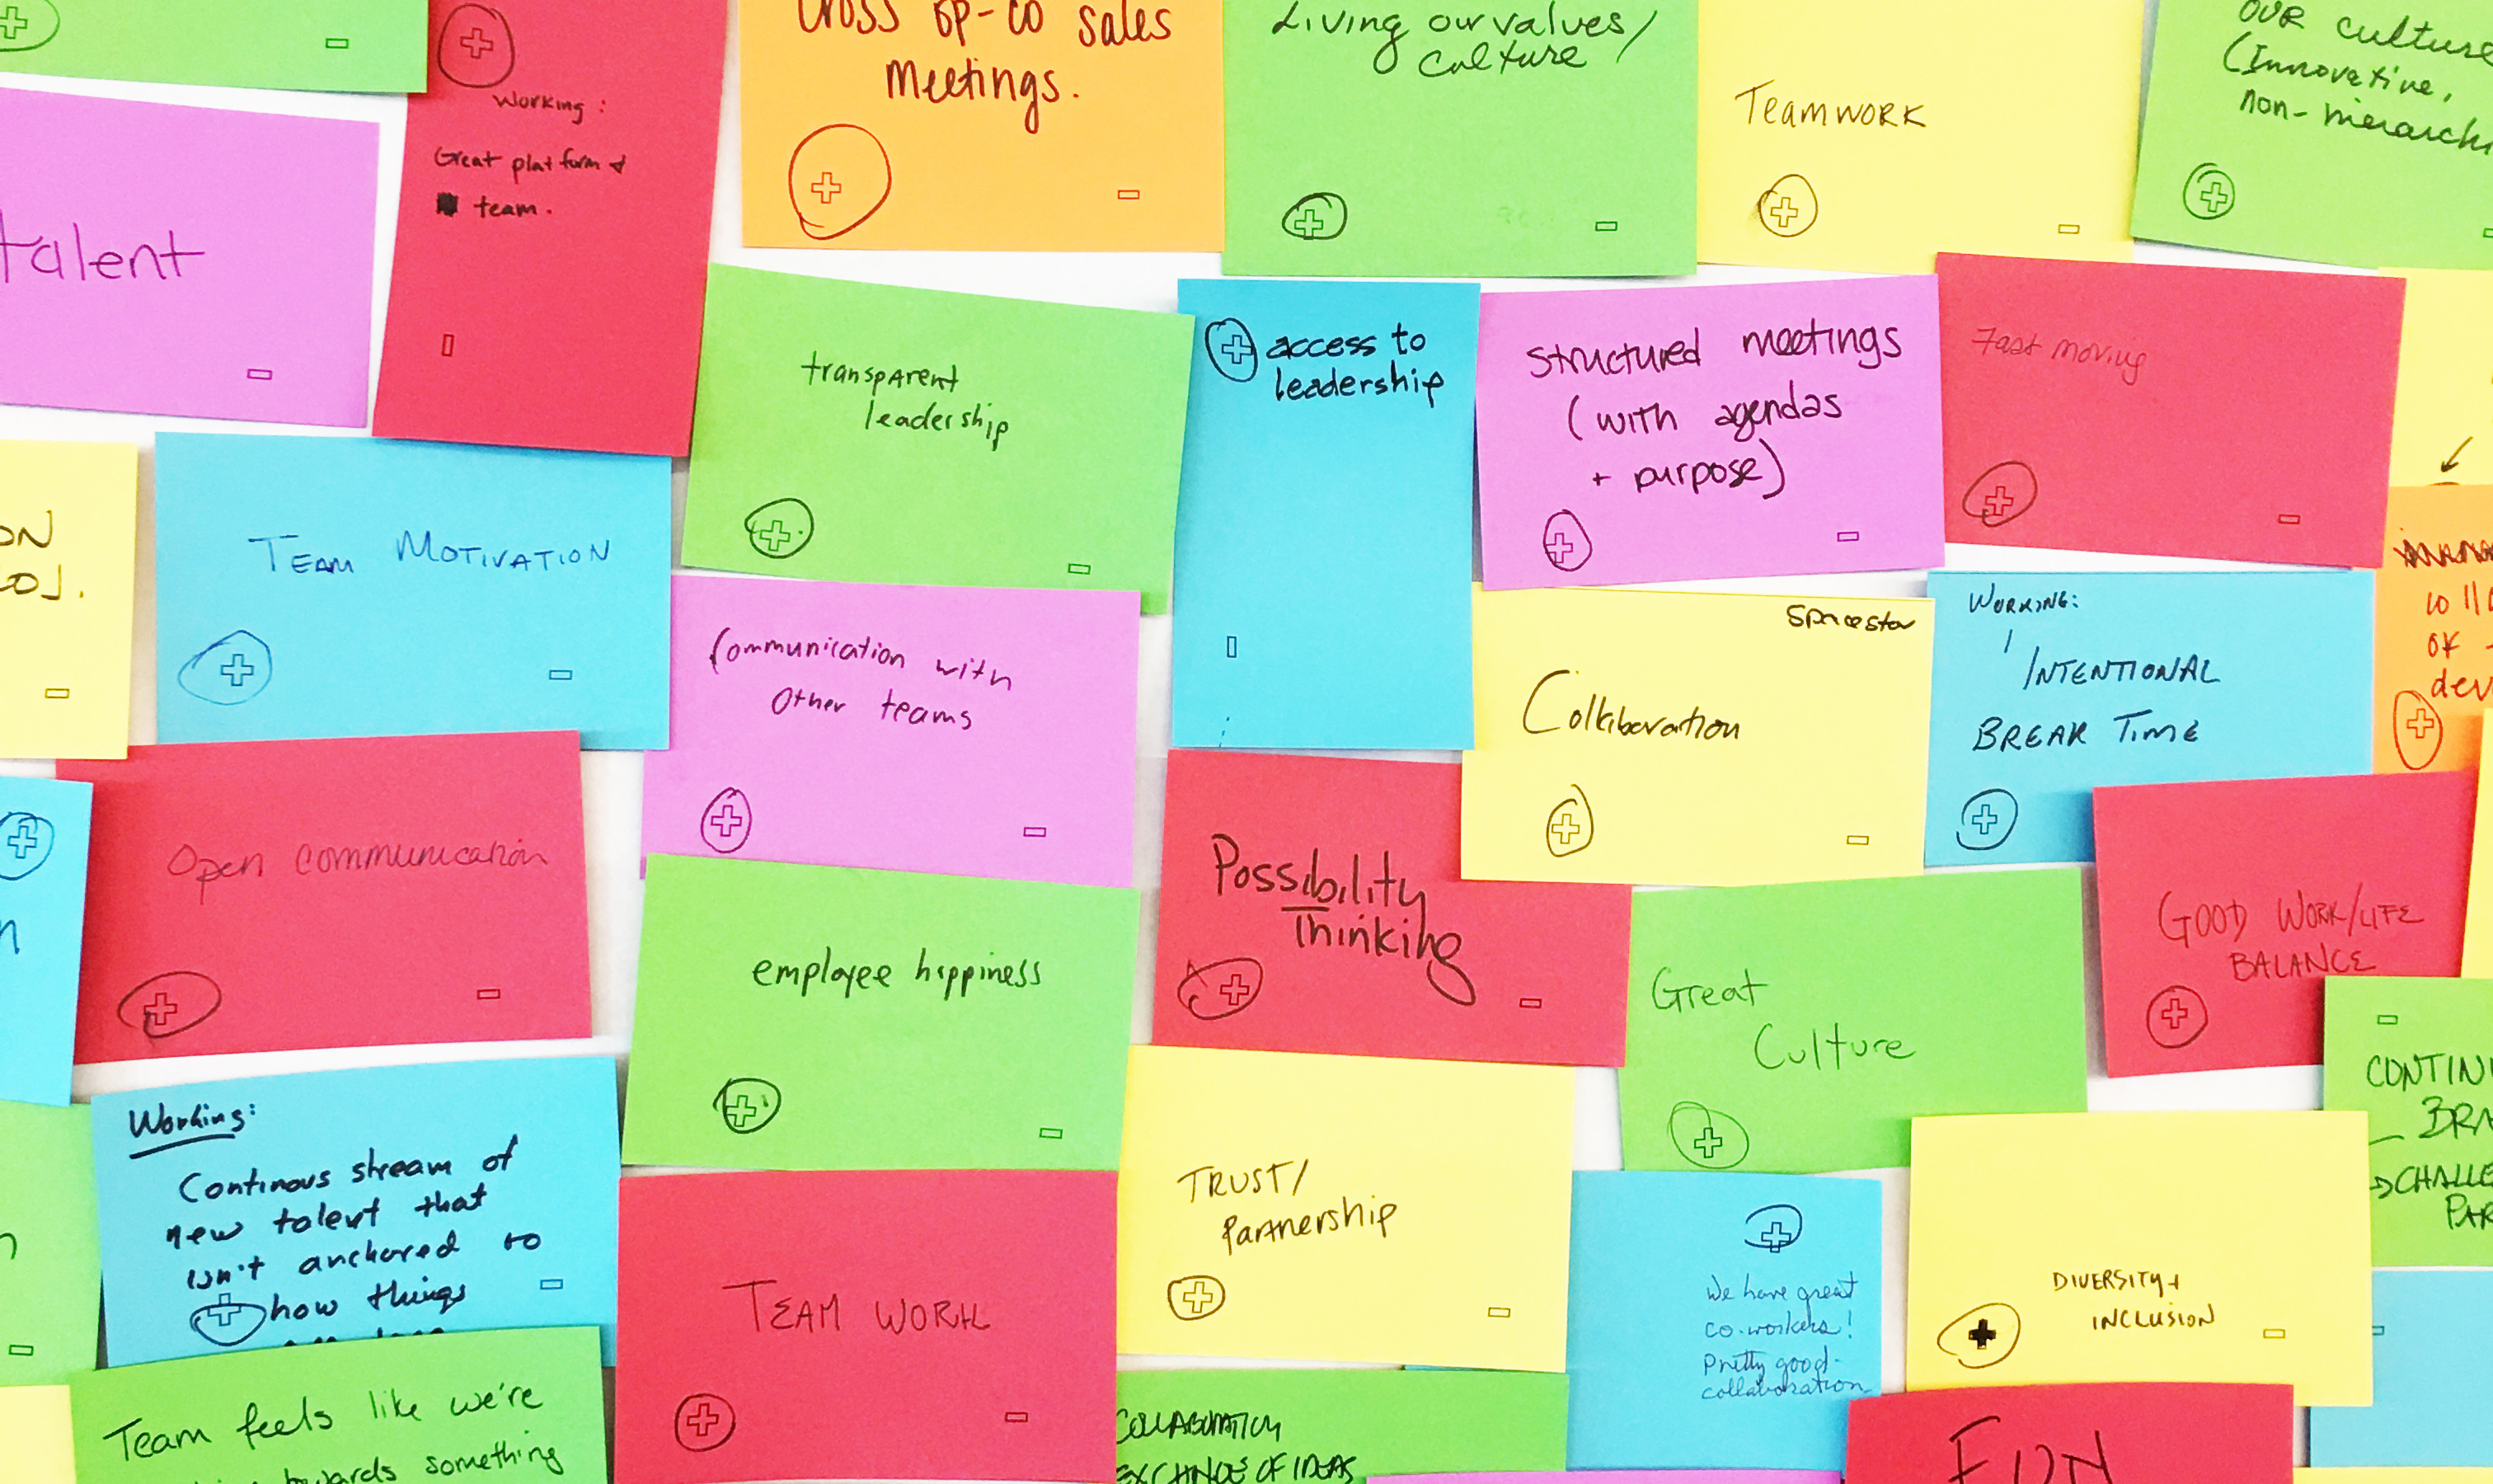 Brainstorming with post-its